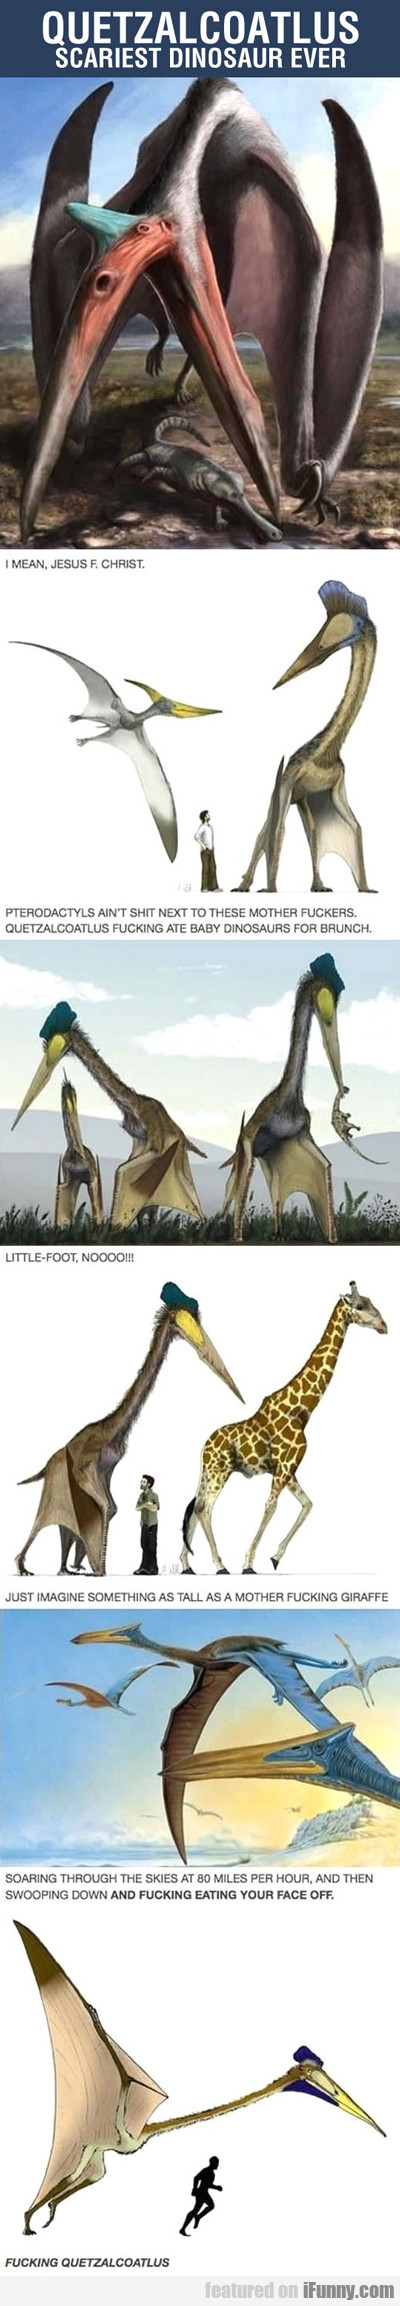 Quetzalcoatlus, The Scariest Dinosaur Ever...